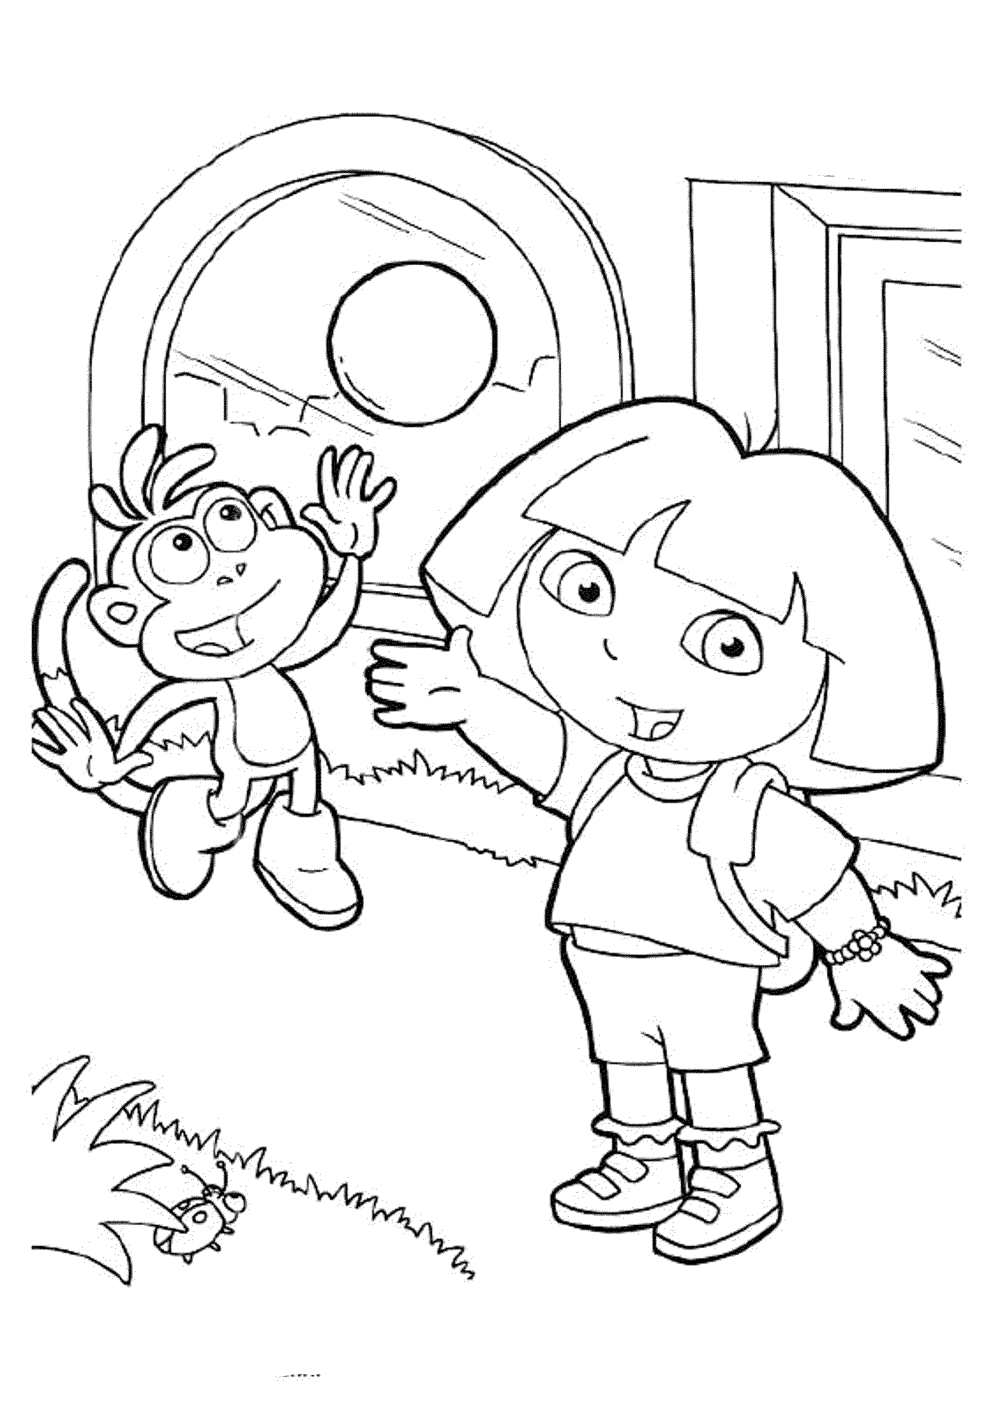 dora the explorer colouring sheets dora coloring lots of dora coloring pages and printables colouring explorer sheets dora the